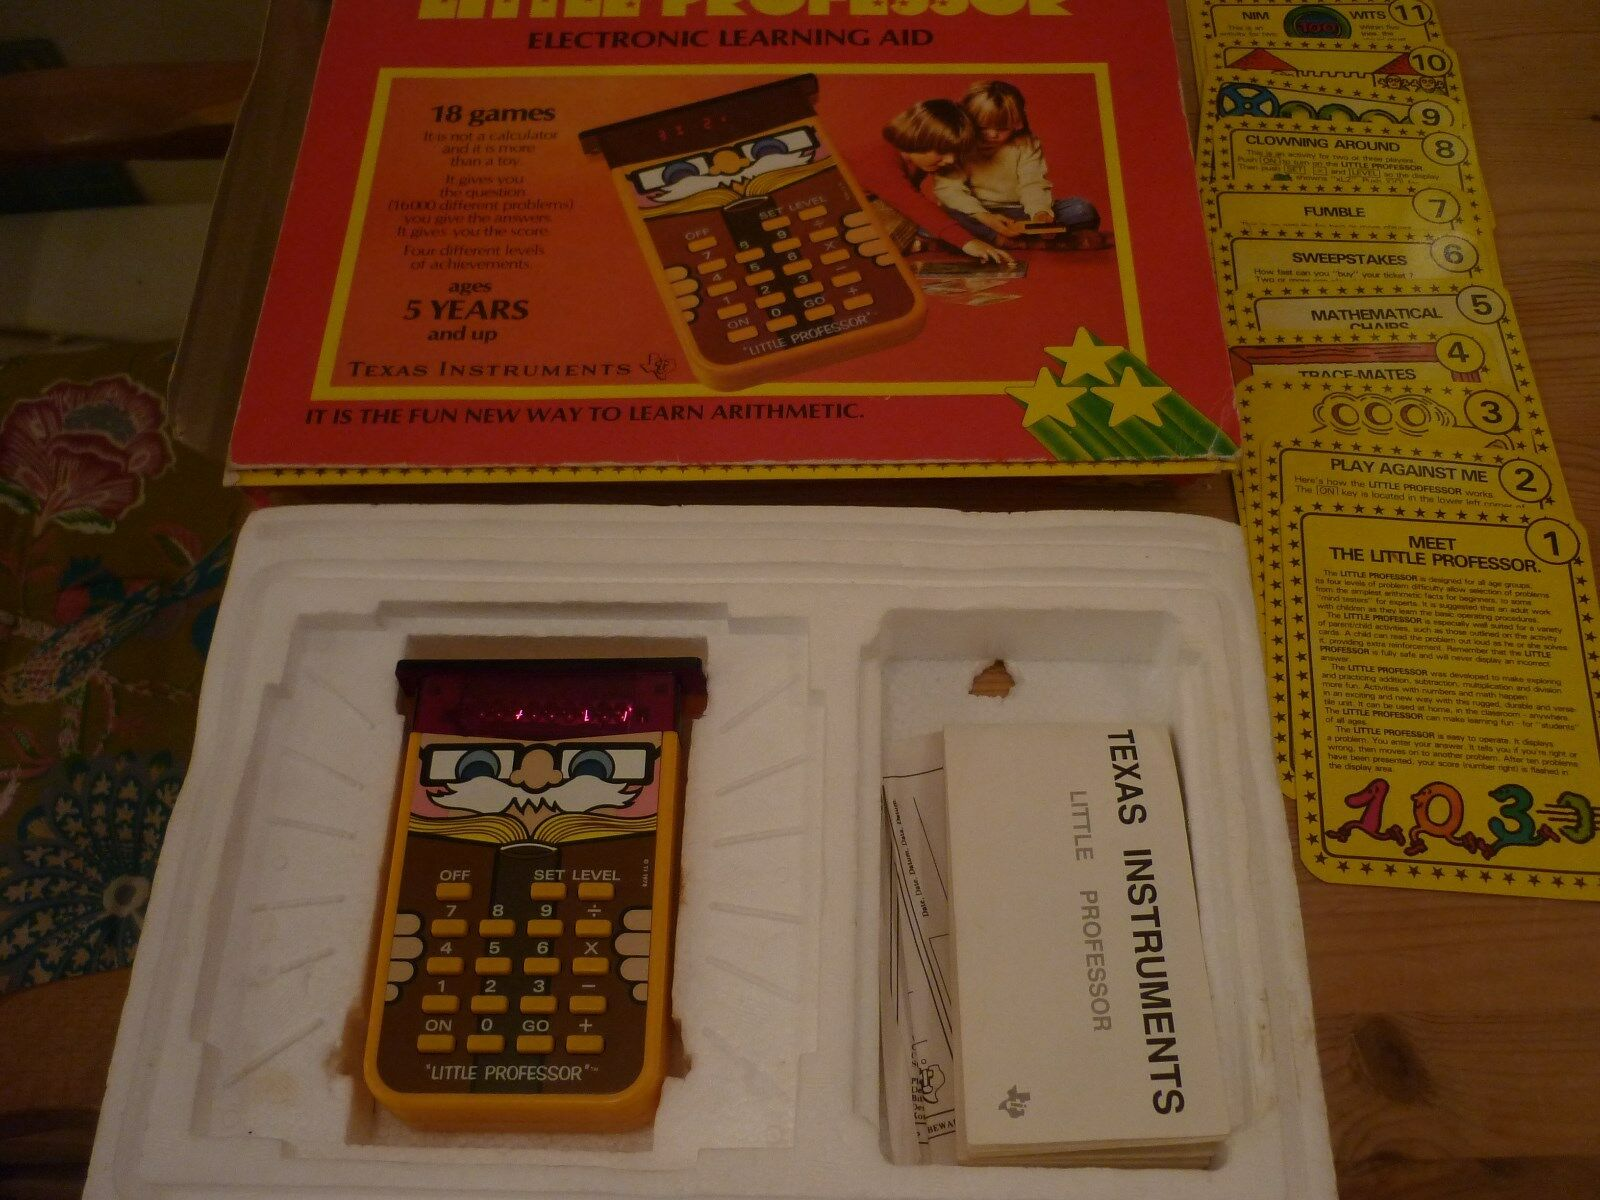 Little Professor Maths LED Game Calculator Boxed Vintage 1980s Texas Instruments